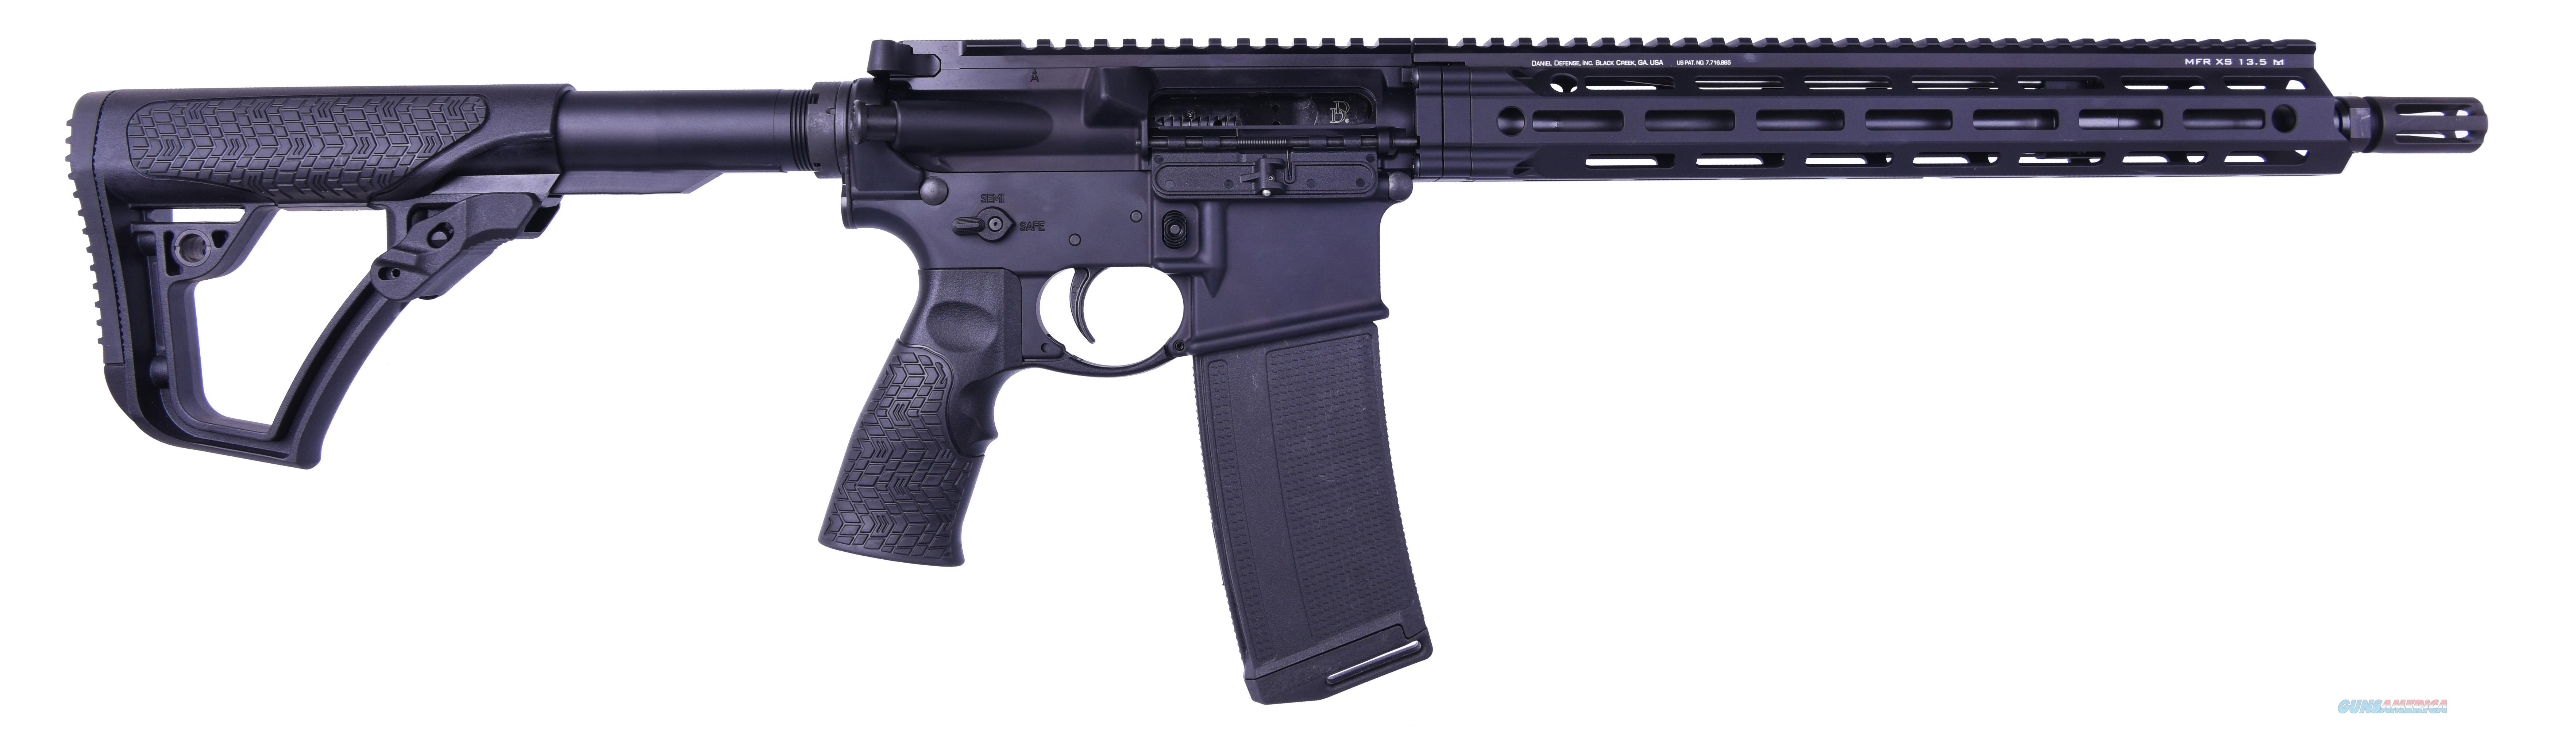 Daniel Defense DDM4 V7 SLW 5.56 14.5 MOD RL   Guns > Rifles > D Misc Rifles